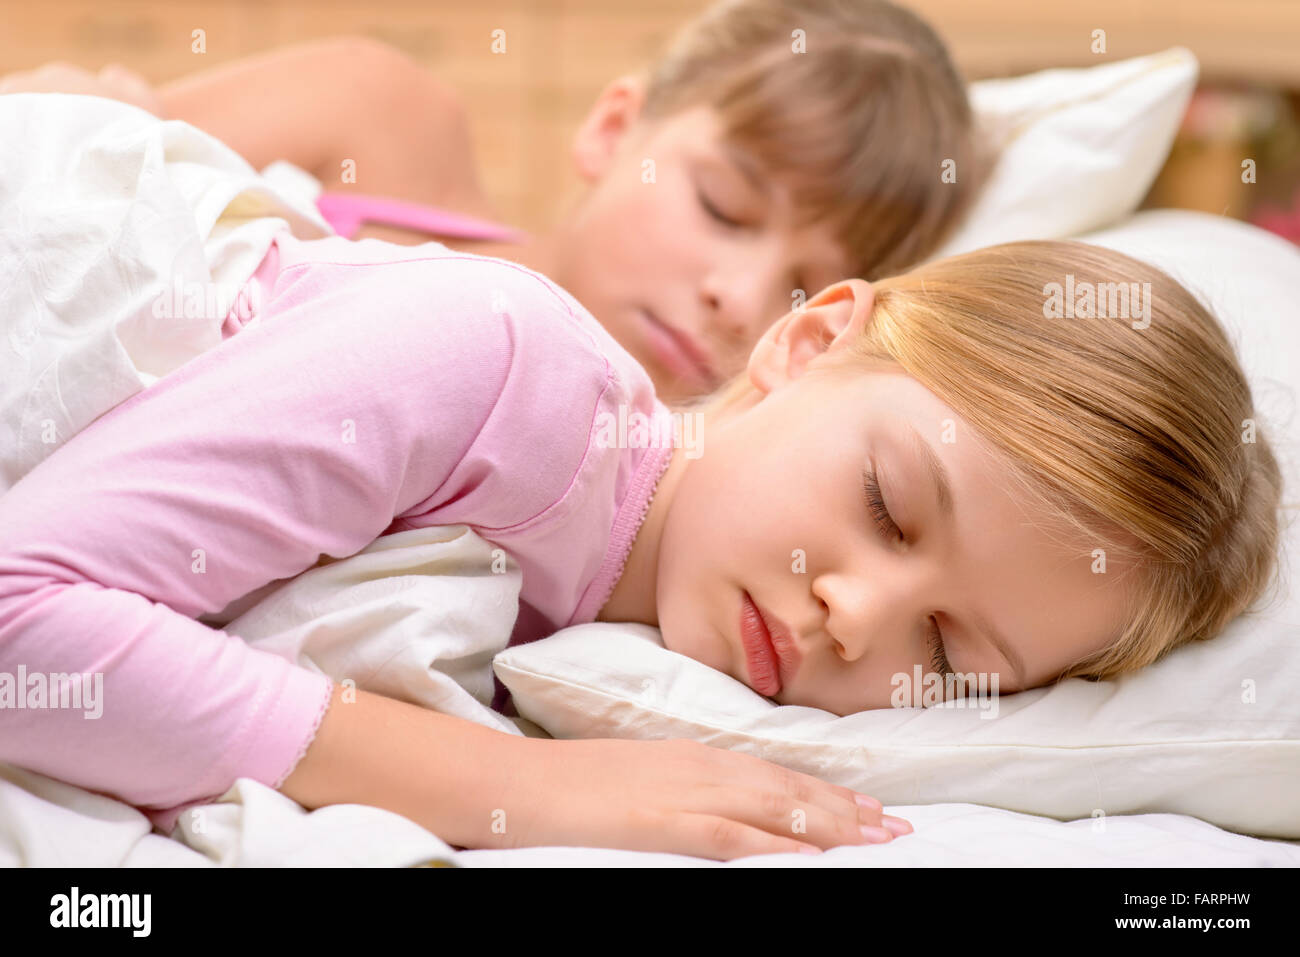 Sleeping teens nn 4